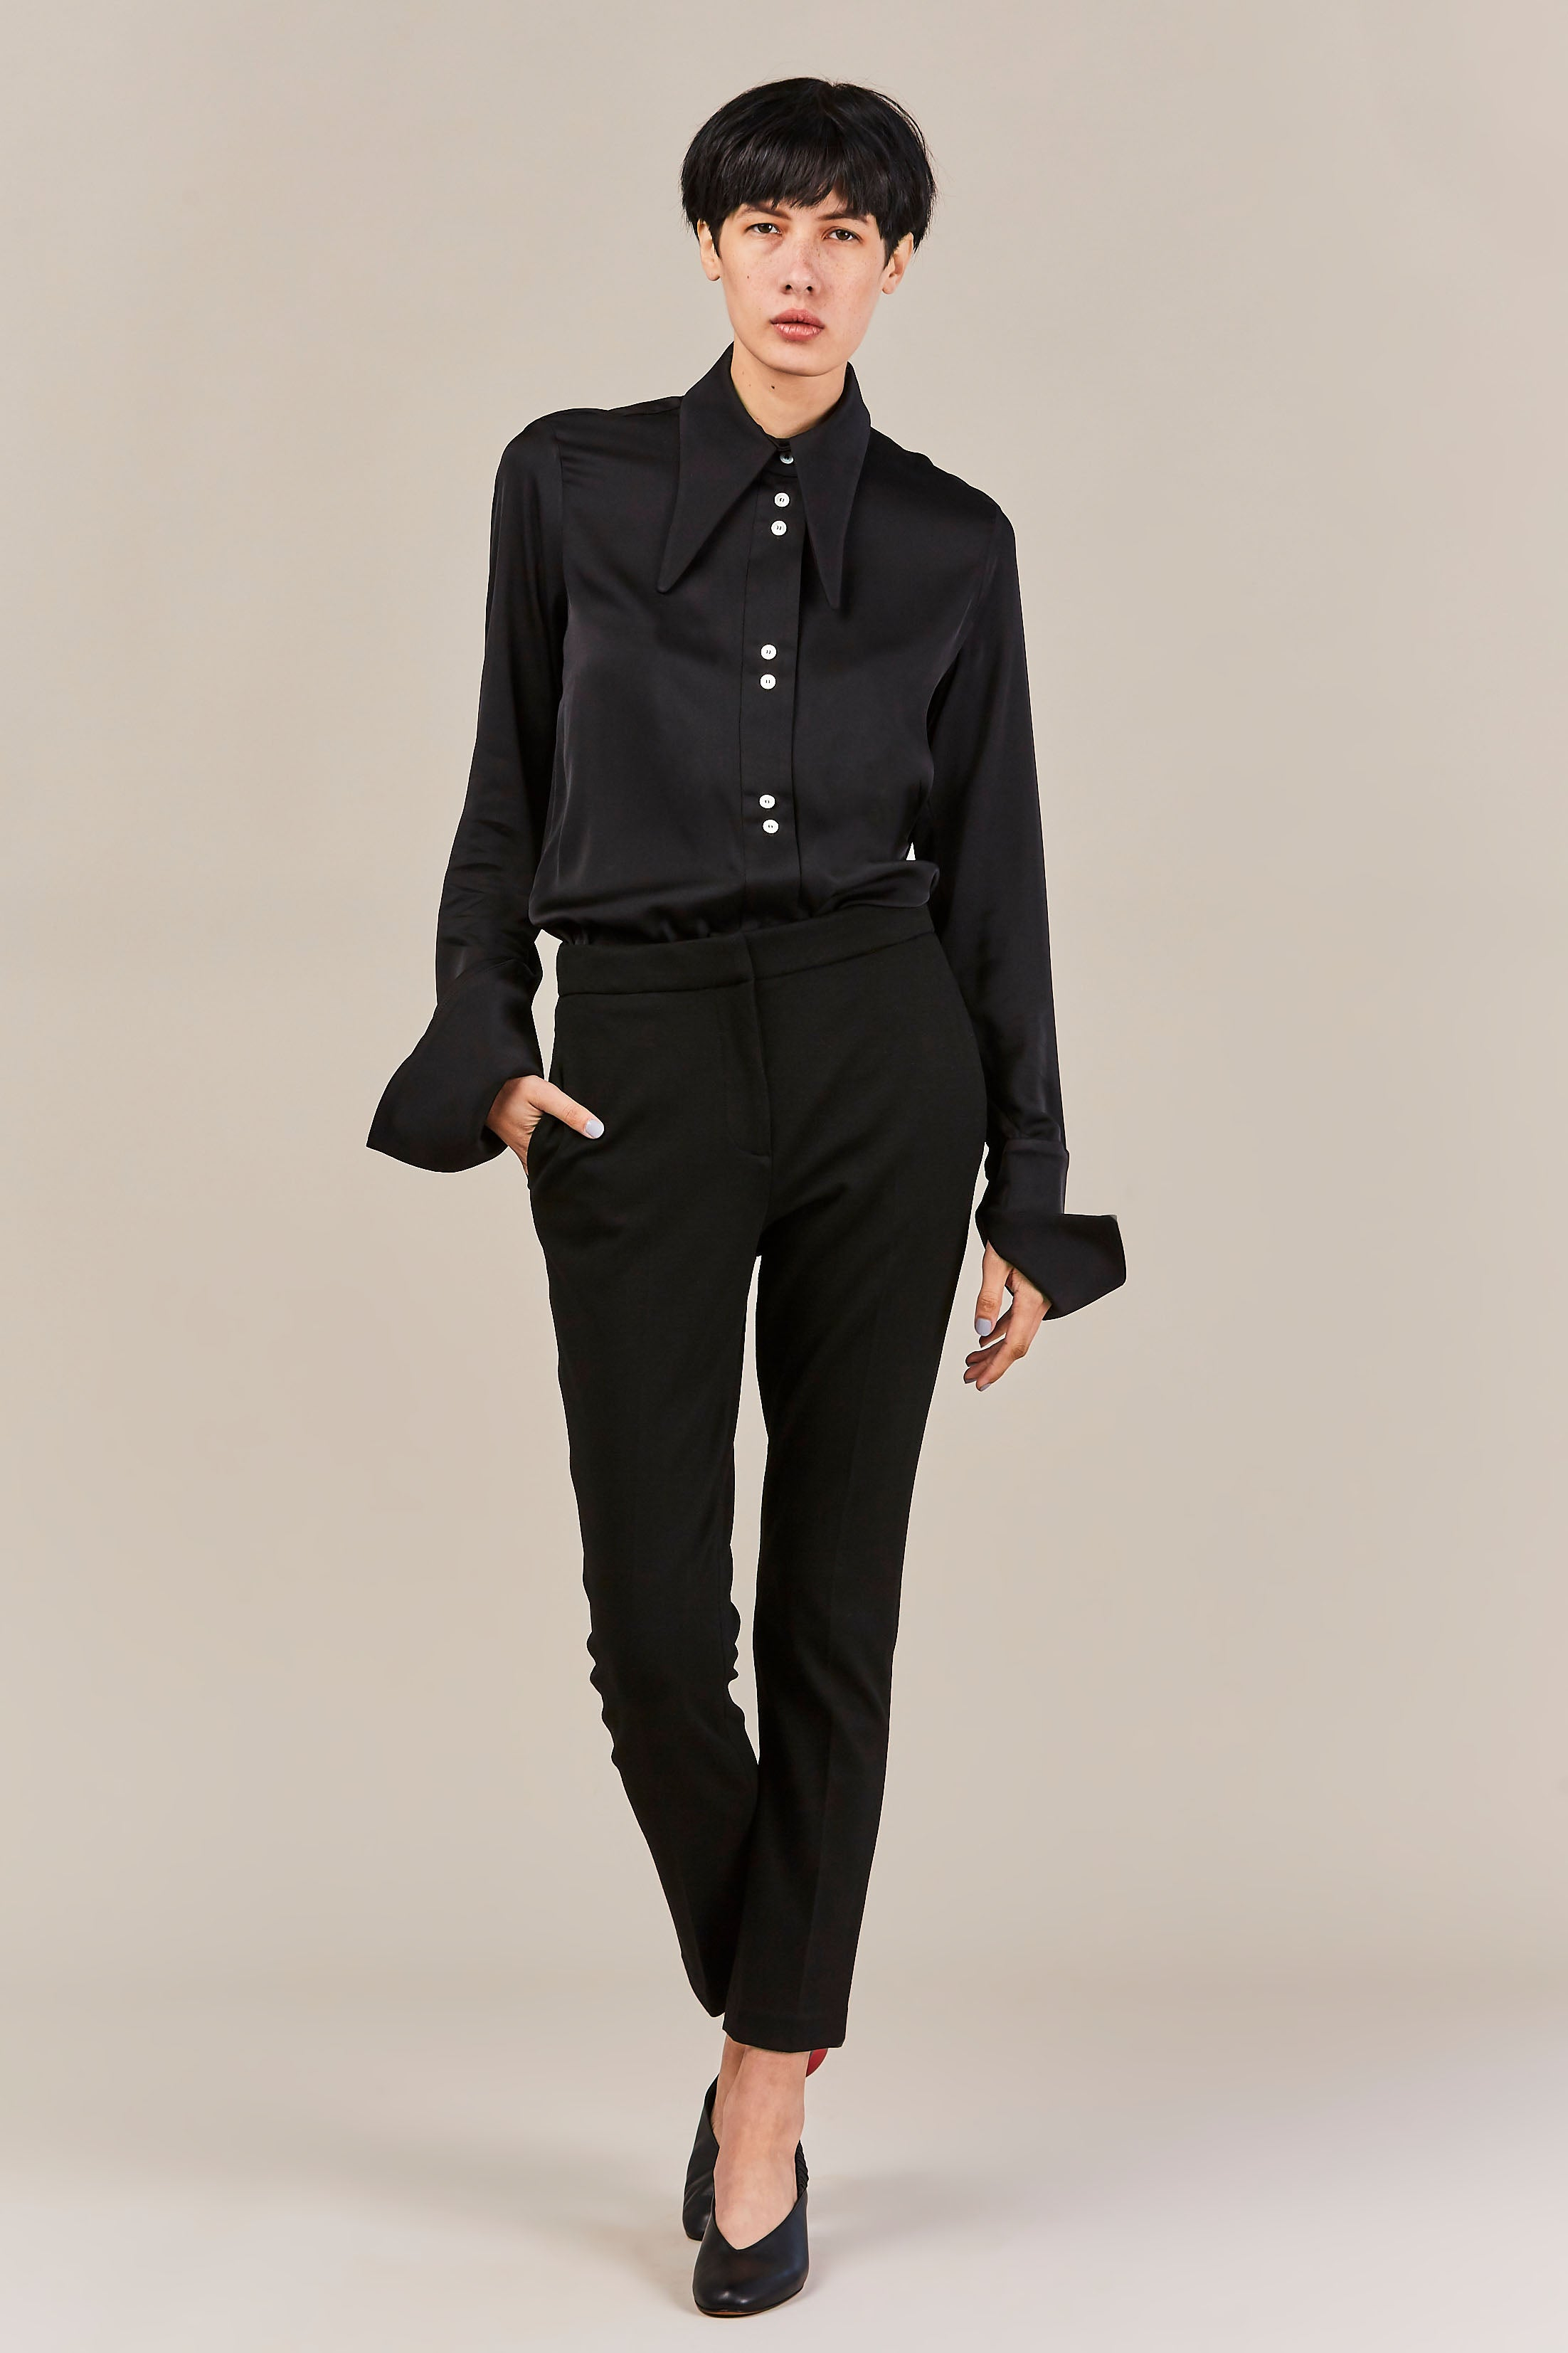 Ellery - Puppy Love Blouse, Black